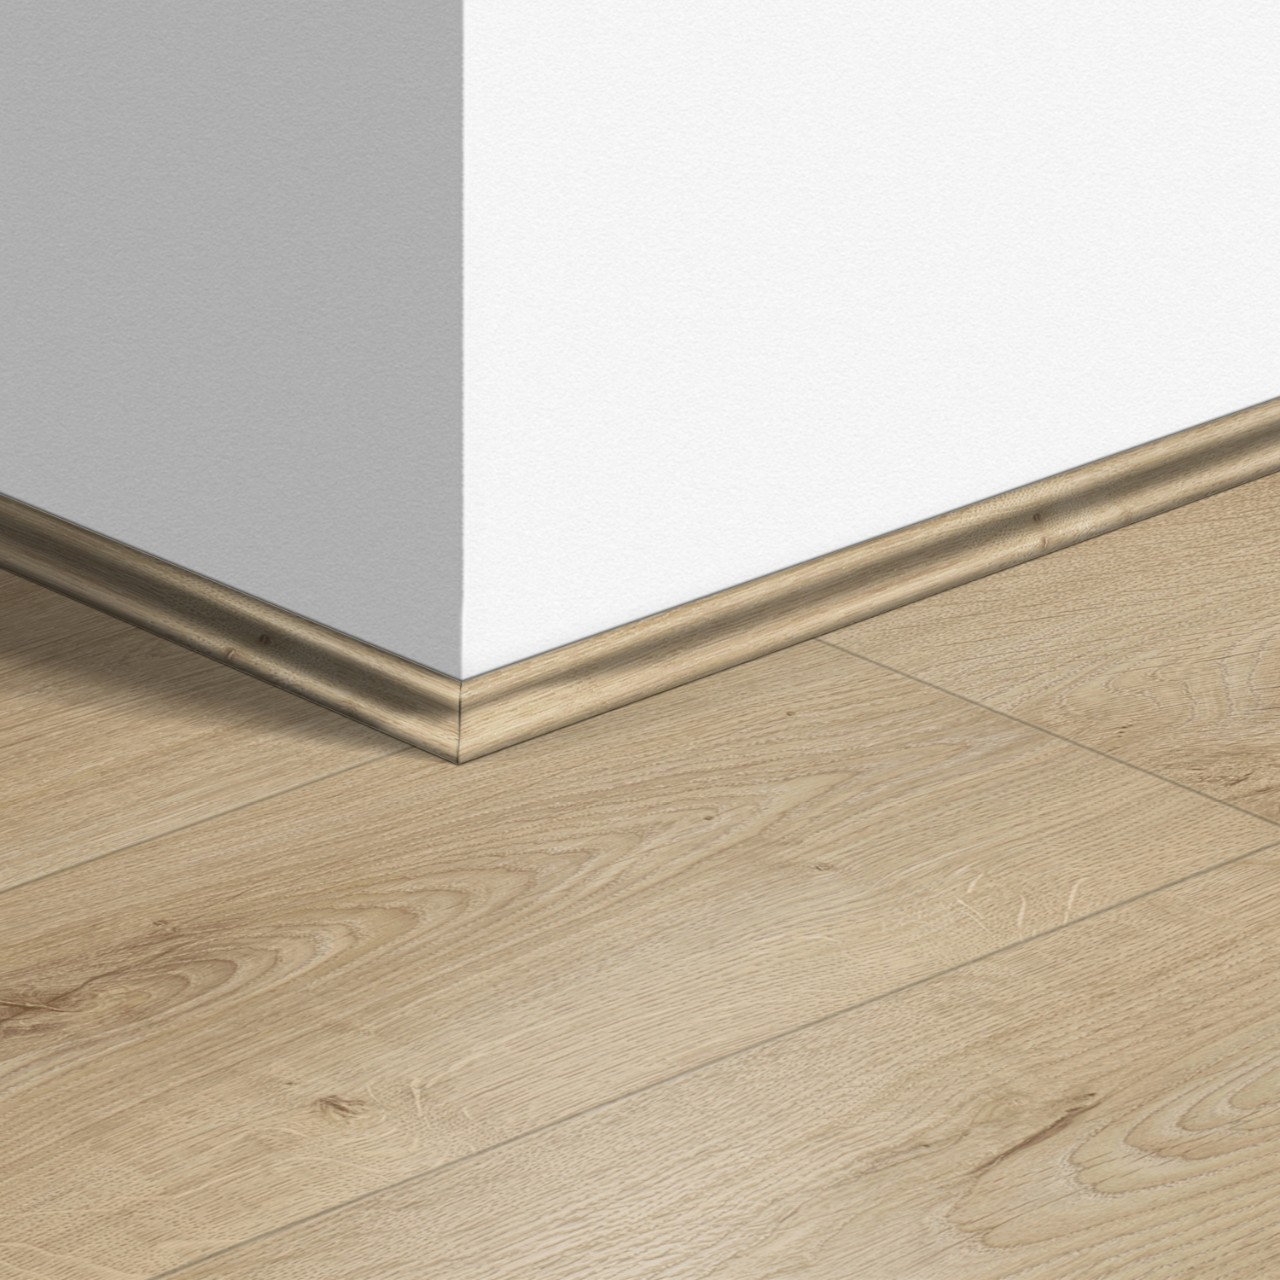 QSSCOT Laminate Accessories Classic oak beige QSSCOT01847